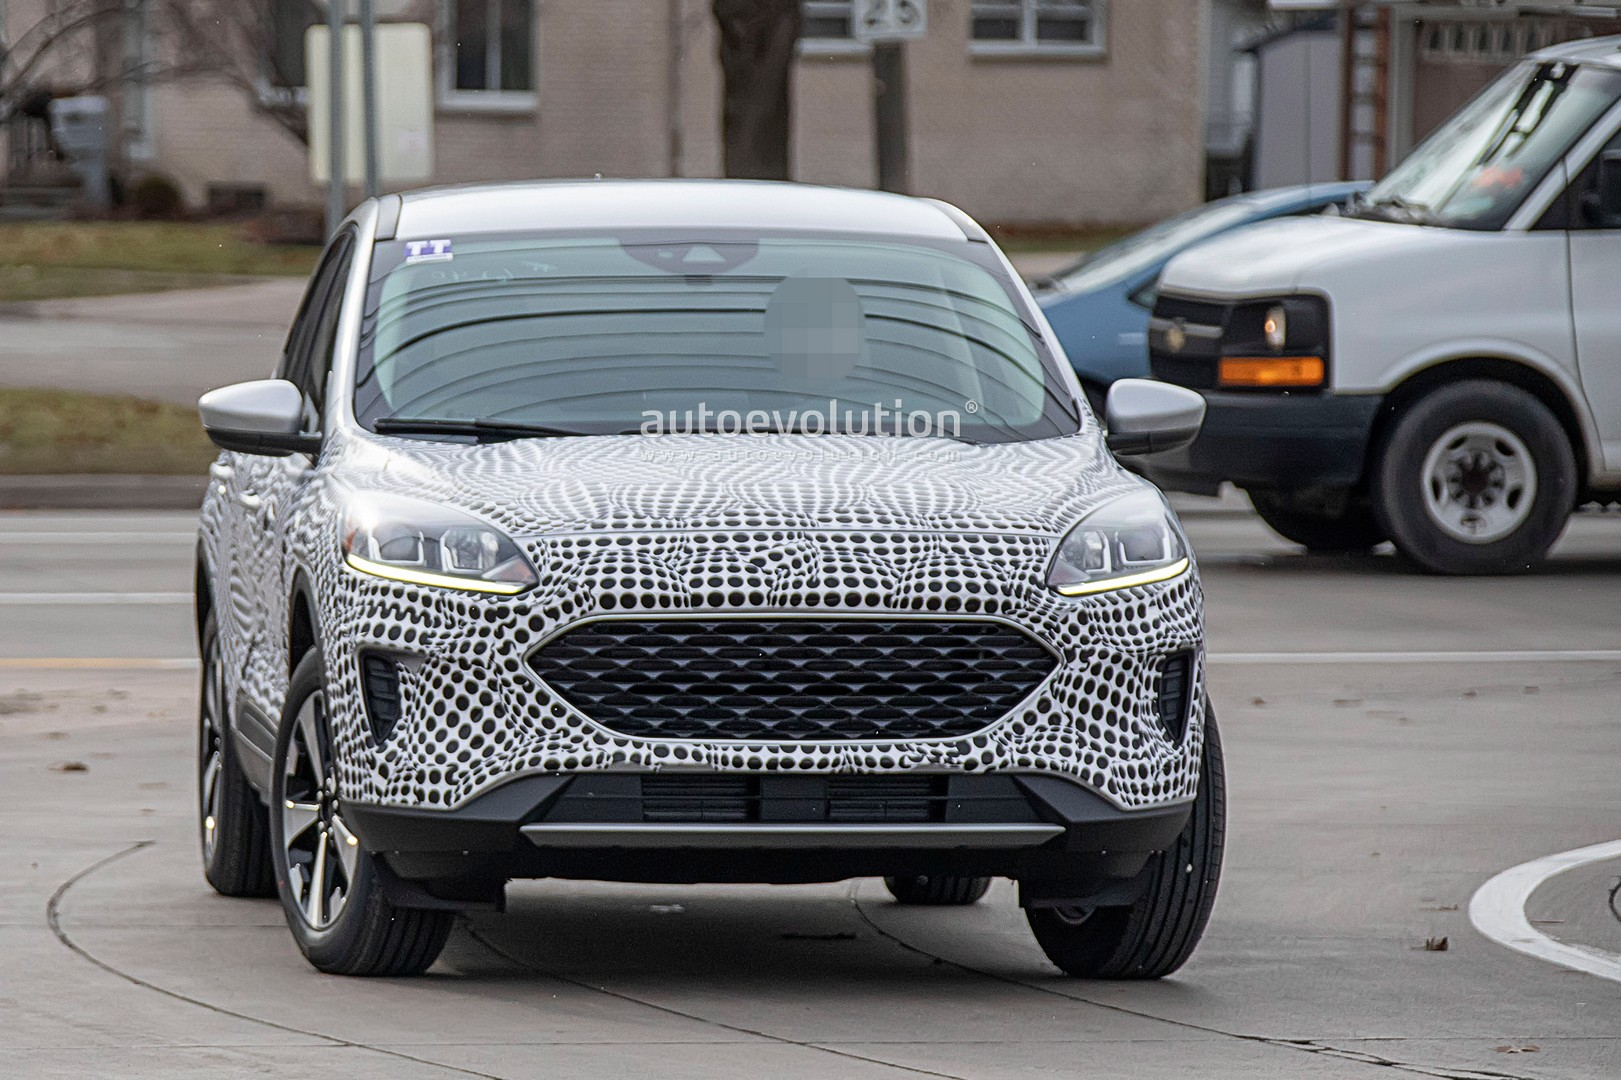 2020 Ford Escape Spy Photos, Pictures, Interior >> 2020 Ford Escape Kuga Spied With Production Body Is A